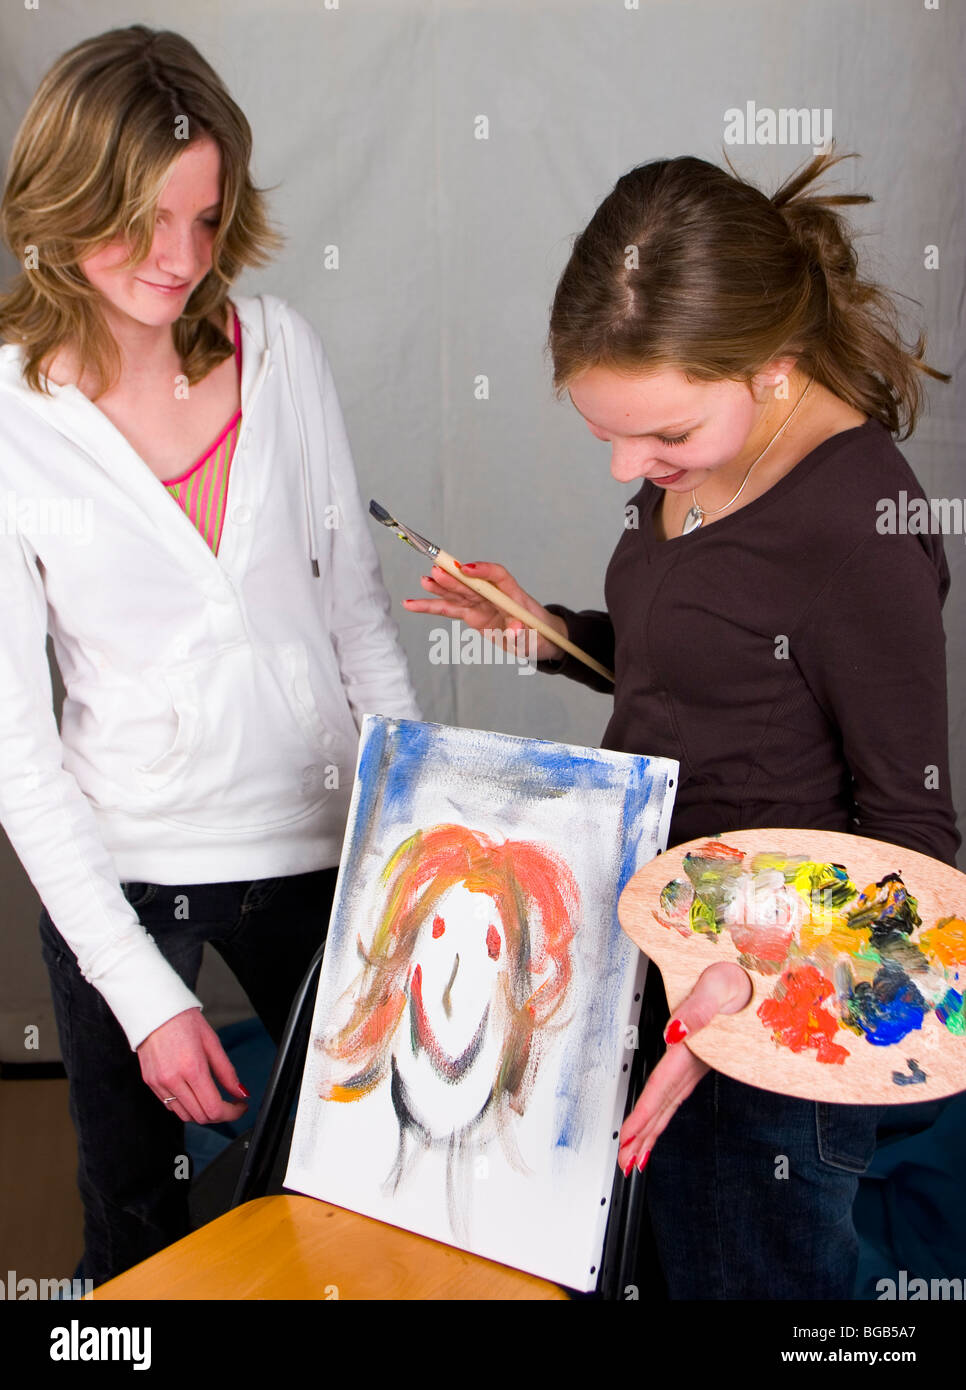 Teenager painting portrait from friend - SerieCVS317704b - Stock Image